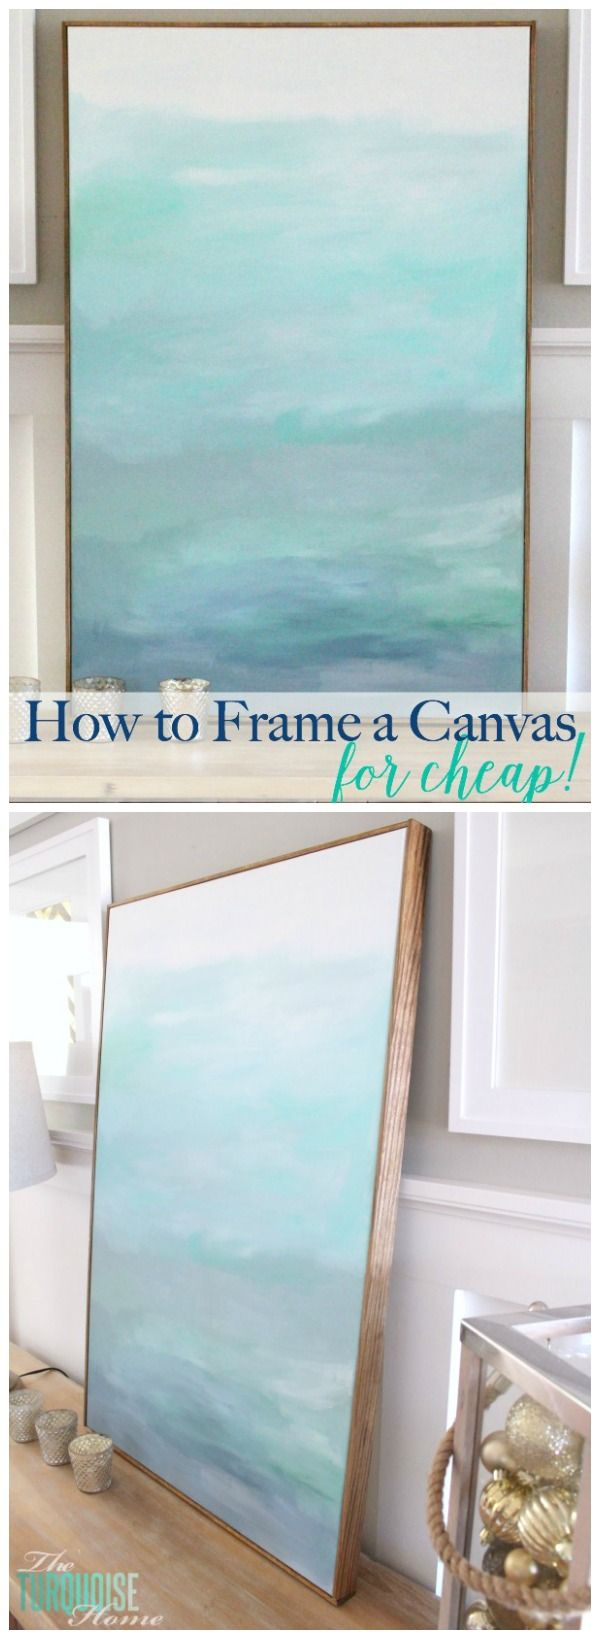 How to Frame a Canvas (for Cheap | Malen, Acryl und Selbermachen